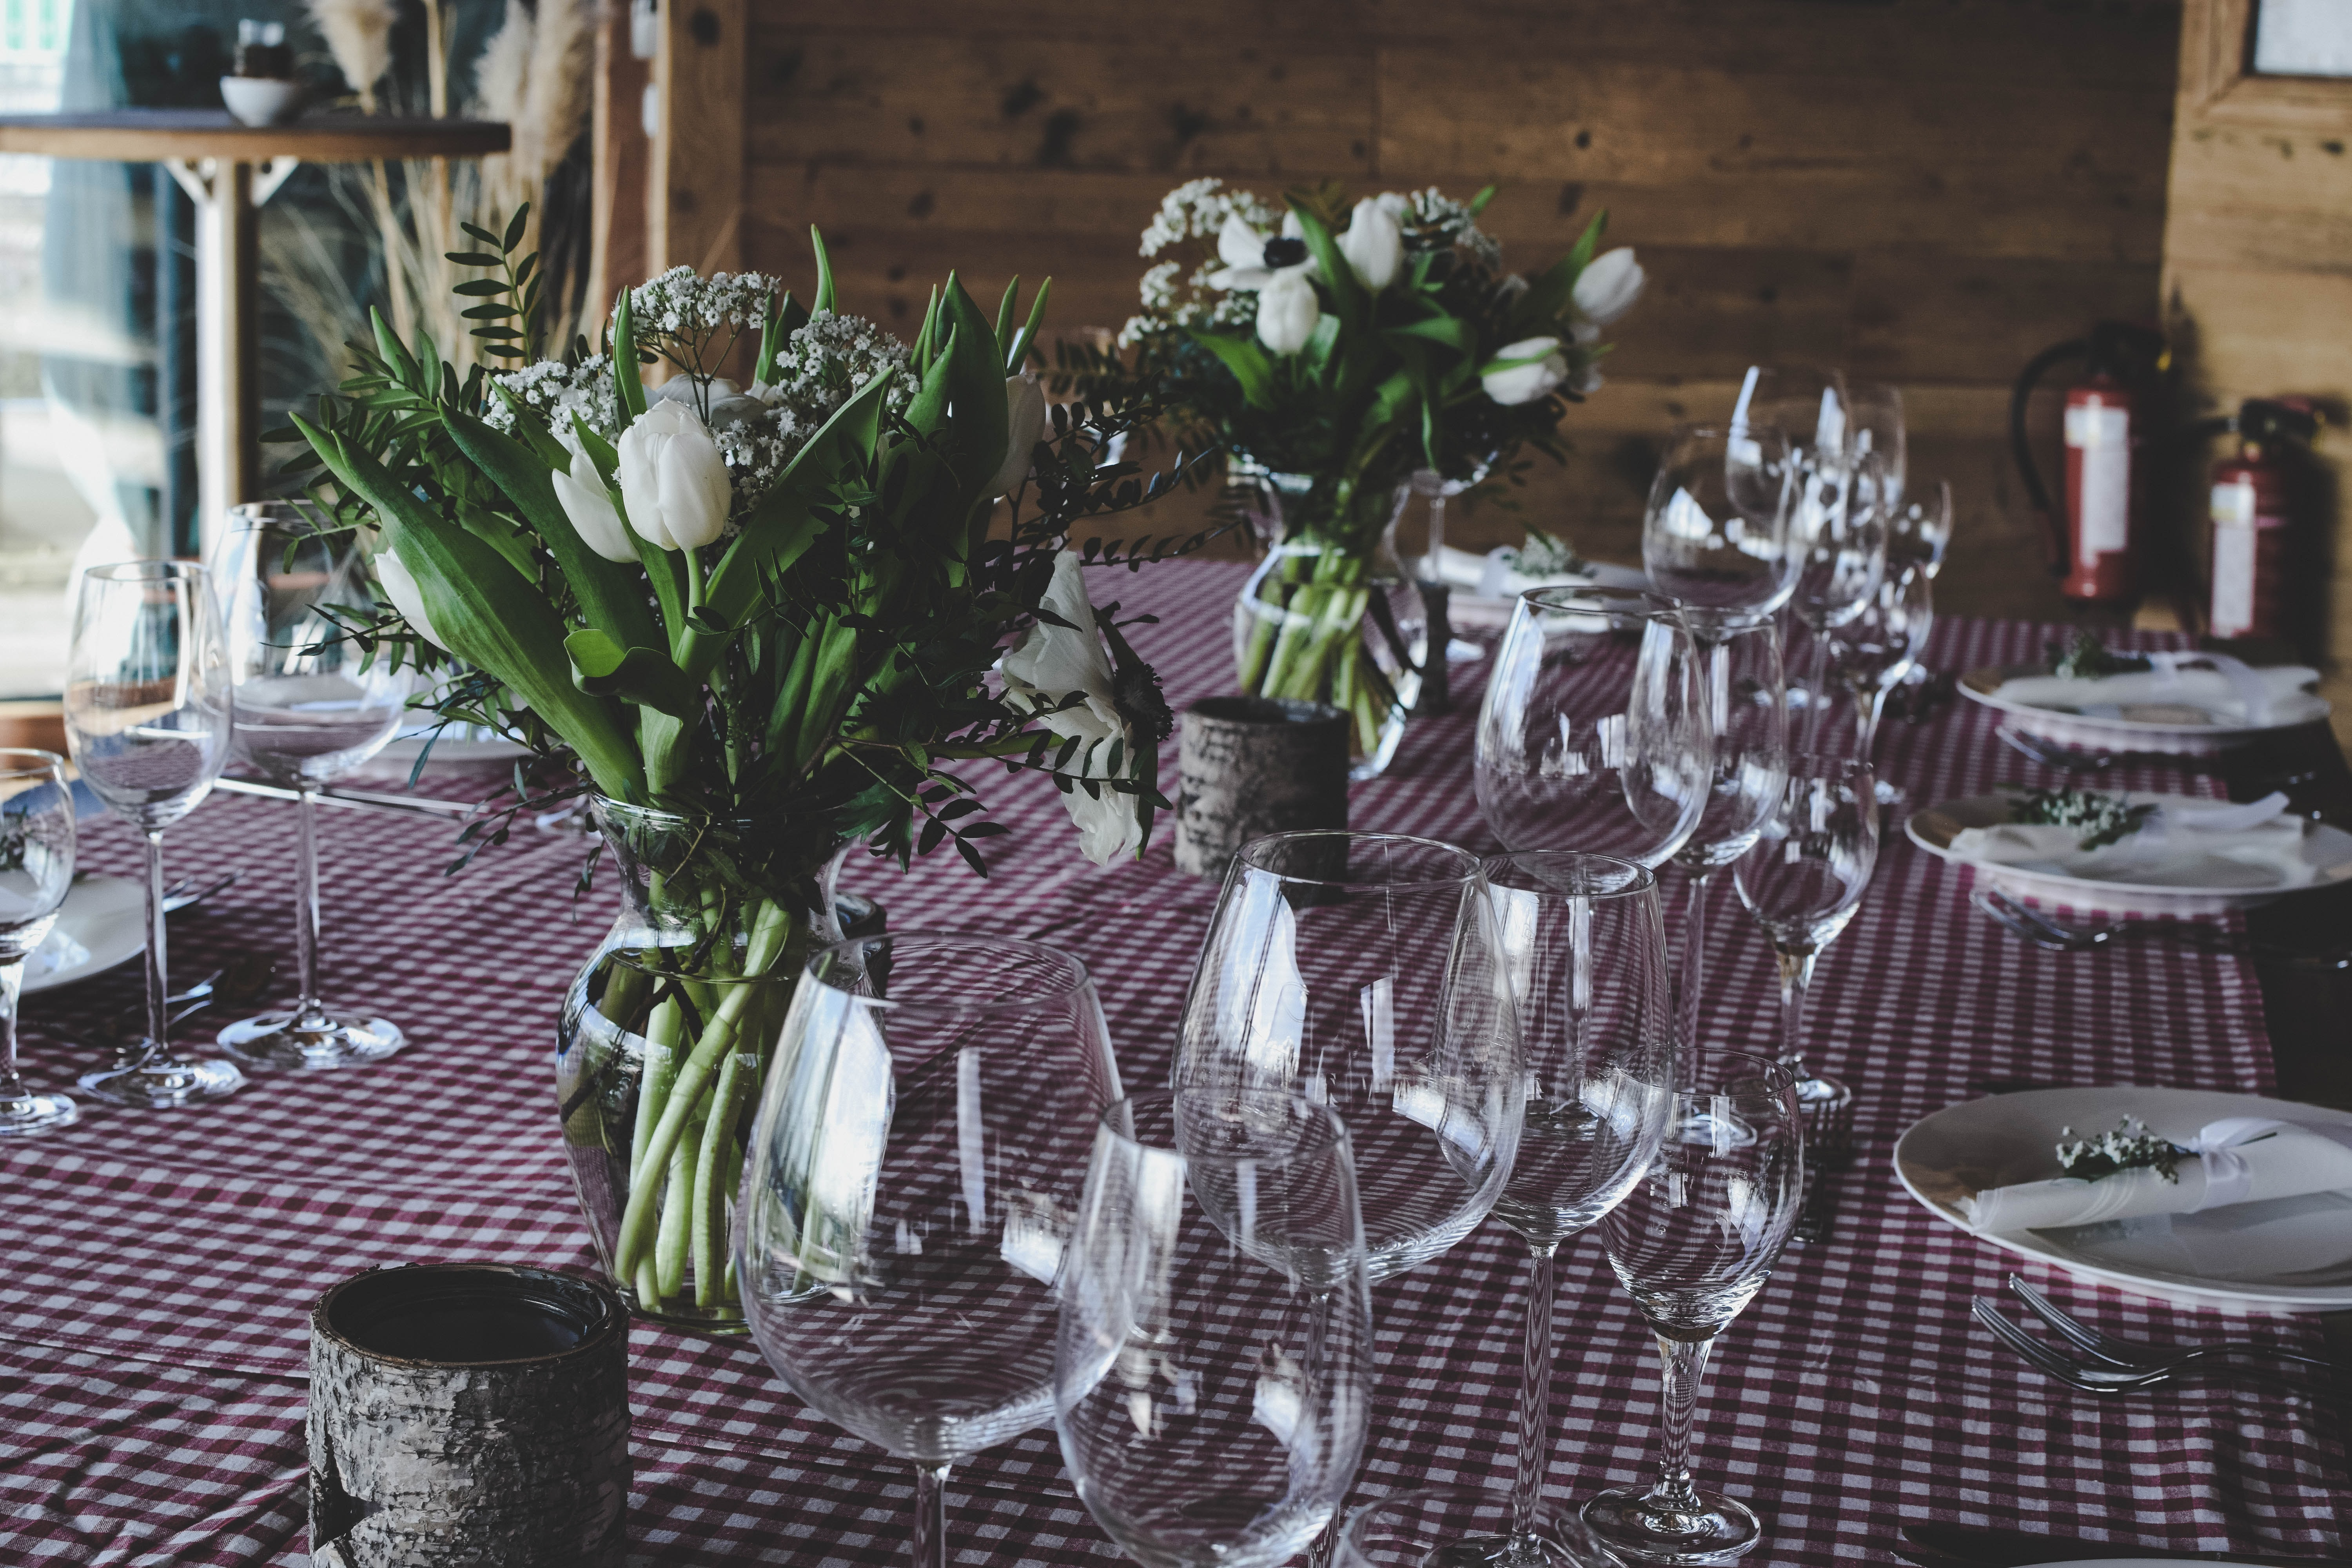 Wine glasses and roses on a dining table.